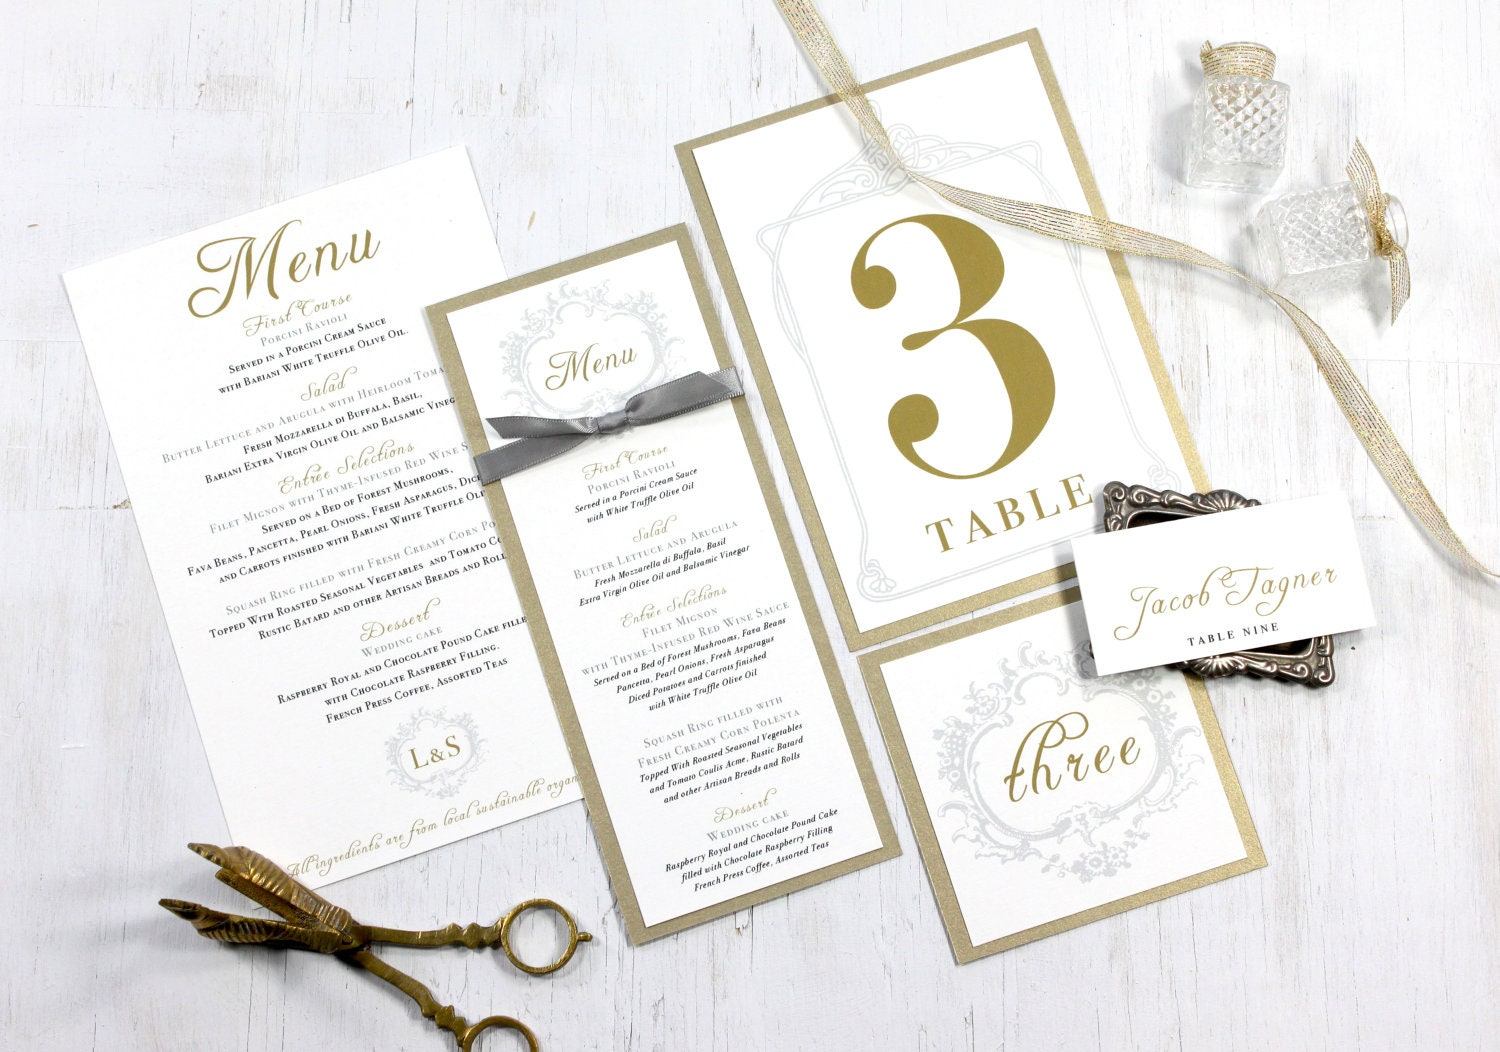 Gold menu cards wedding place cards elegant wedding table for Table place cards